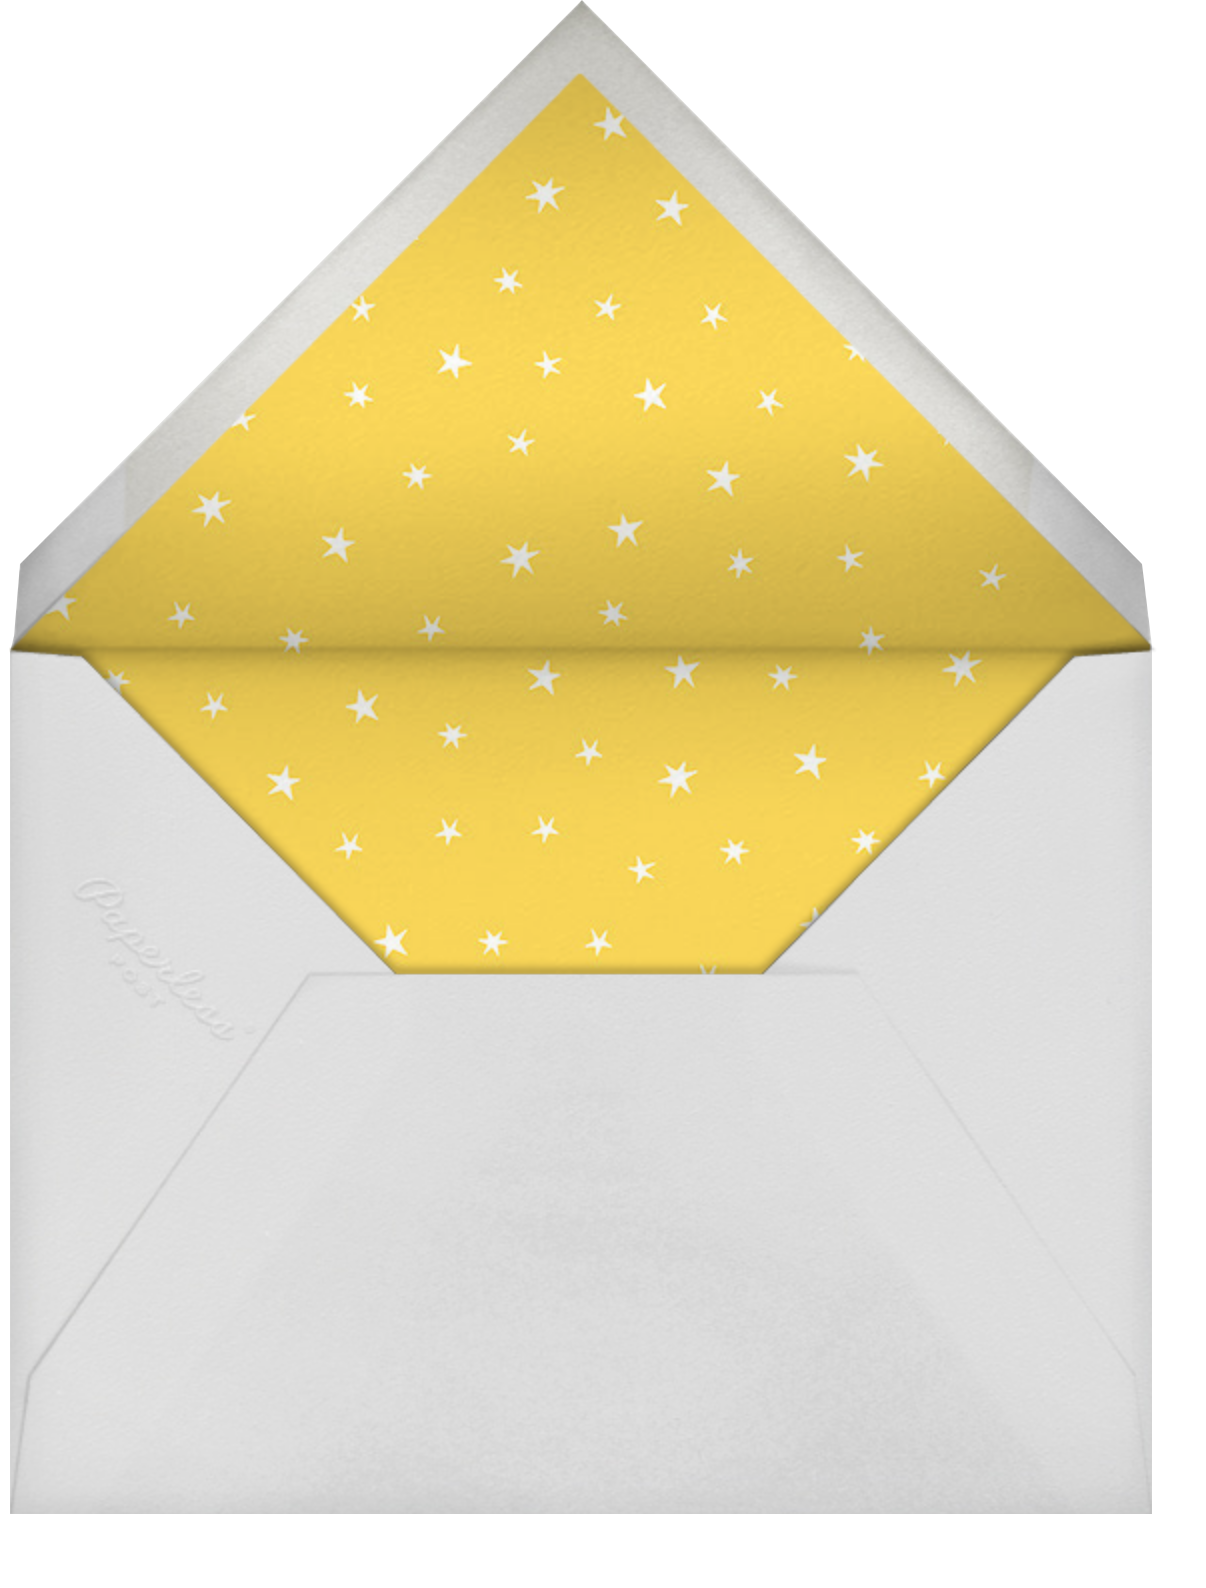 Baby Things (Stationery) - Pink - Hello!Lucky - Envelope